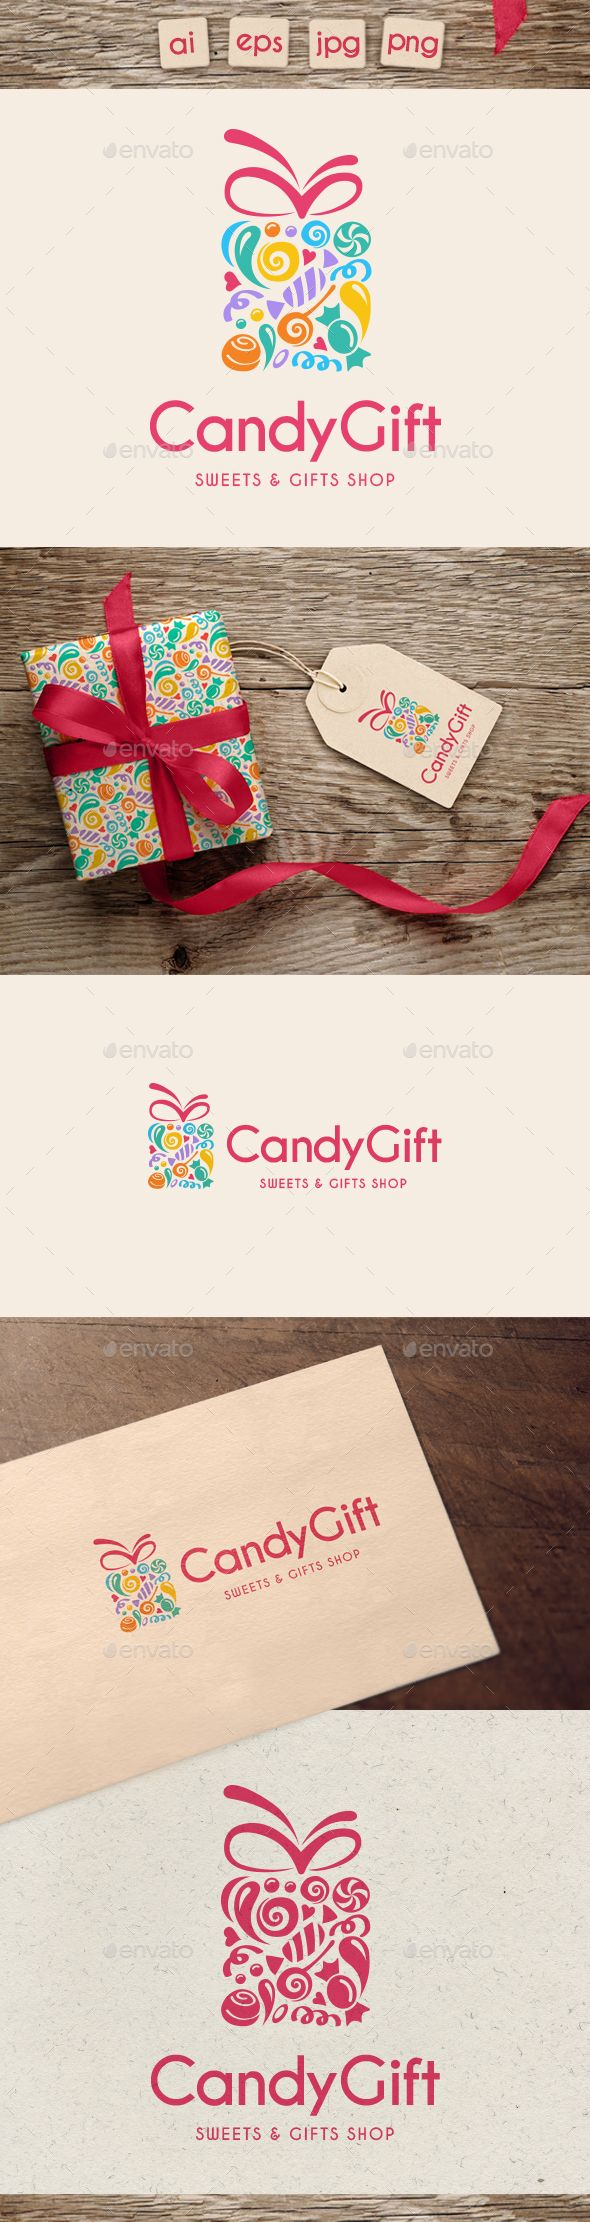 Candy Gift Logo  — PNG Image #sweet • Download ➝ https://graphicriver.net/item/candy-gift-logo/18540059?ref=pxcr